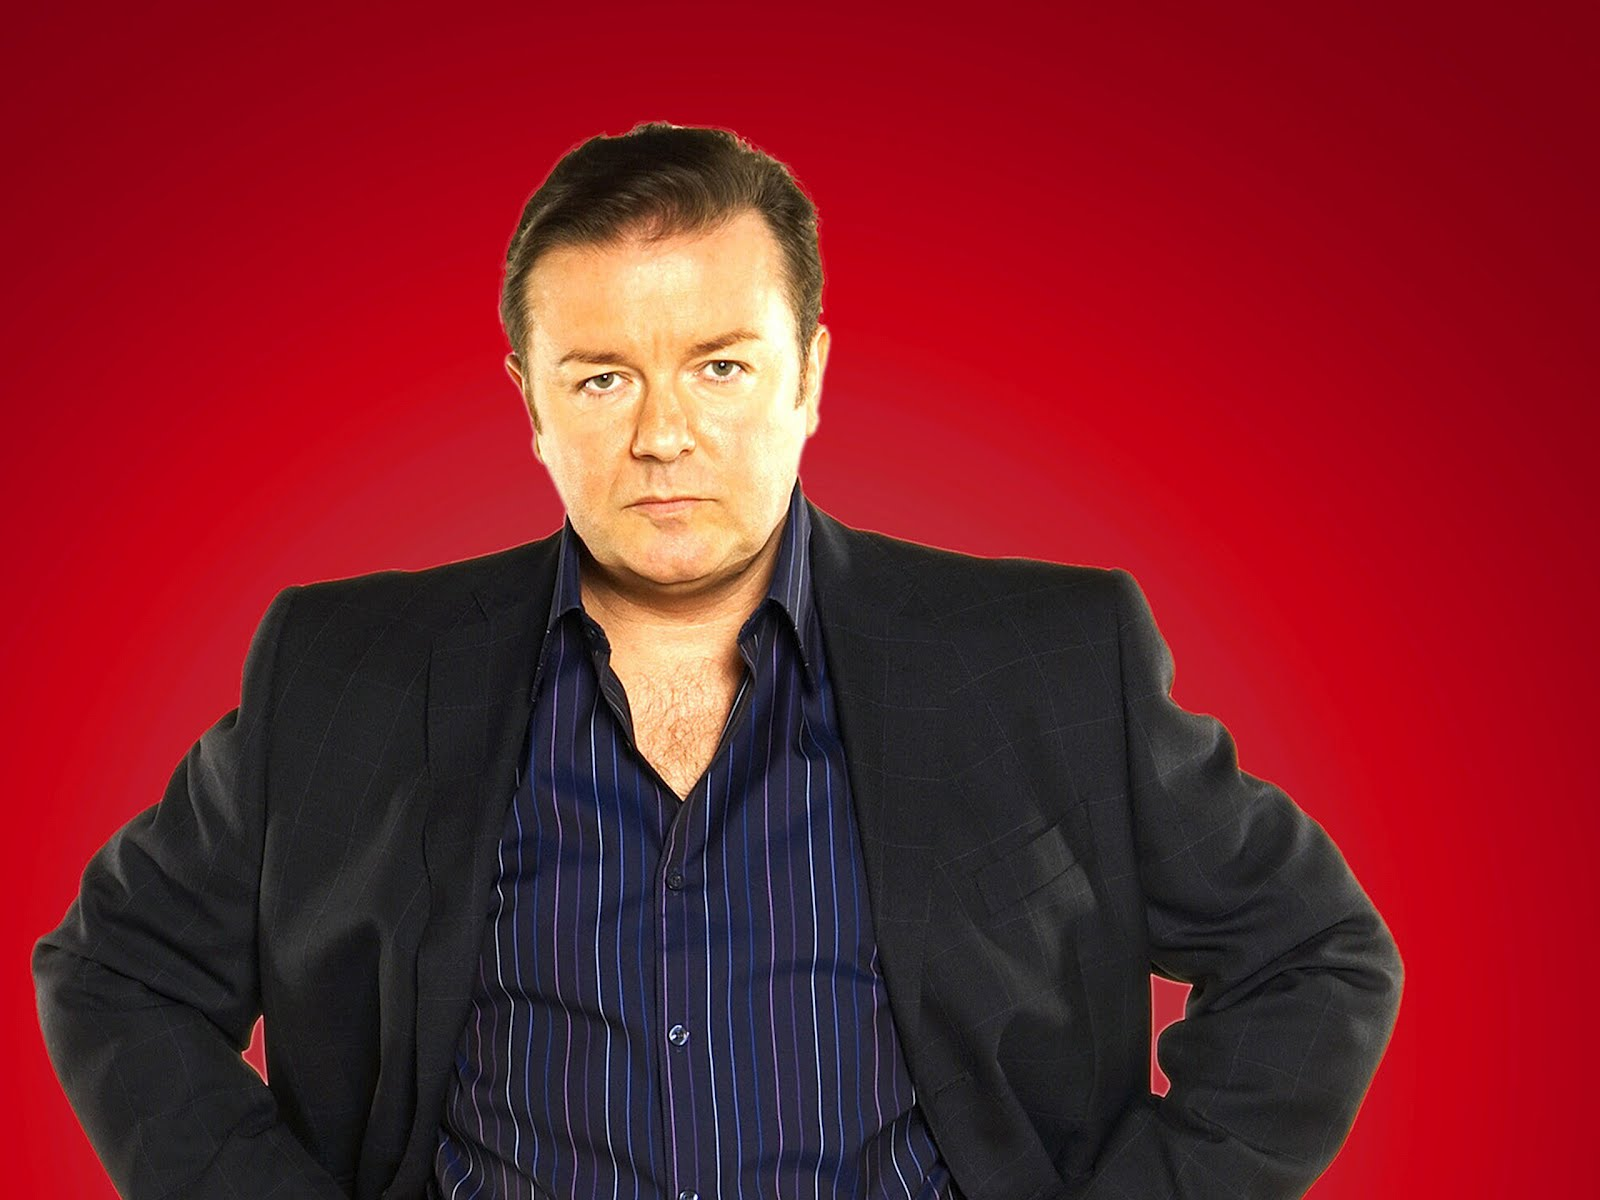 Ricky Gervais Wallpaper